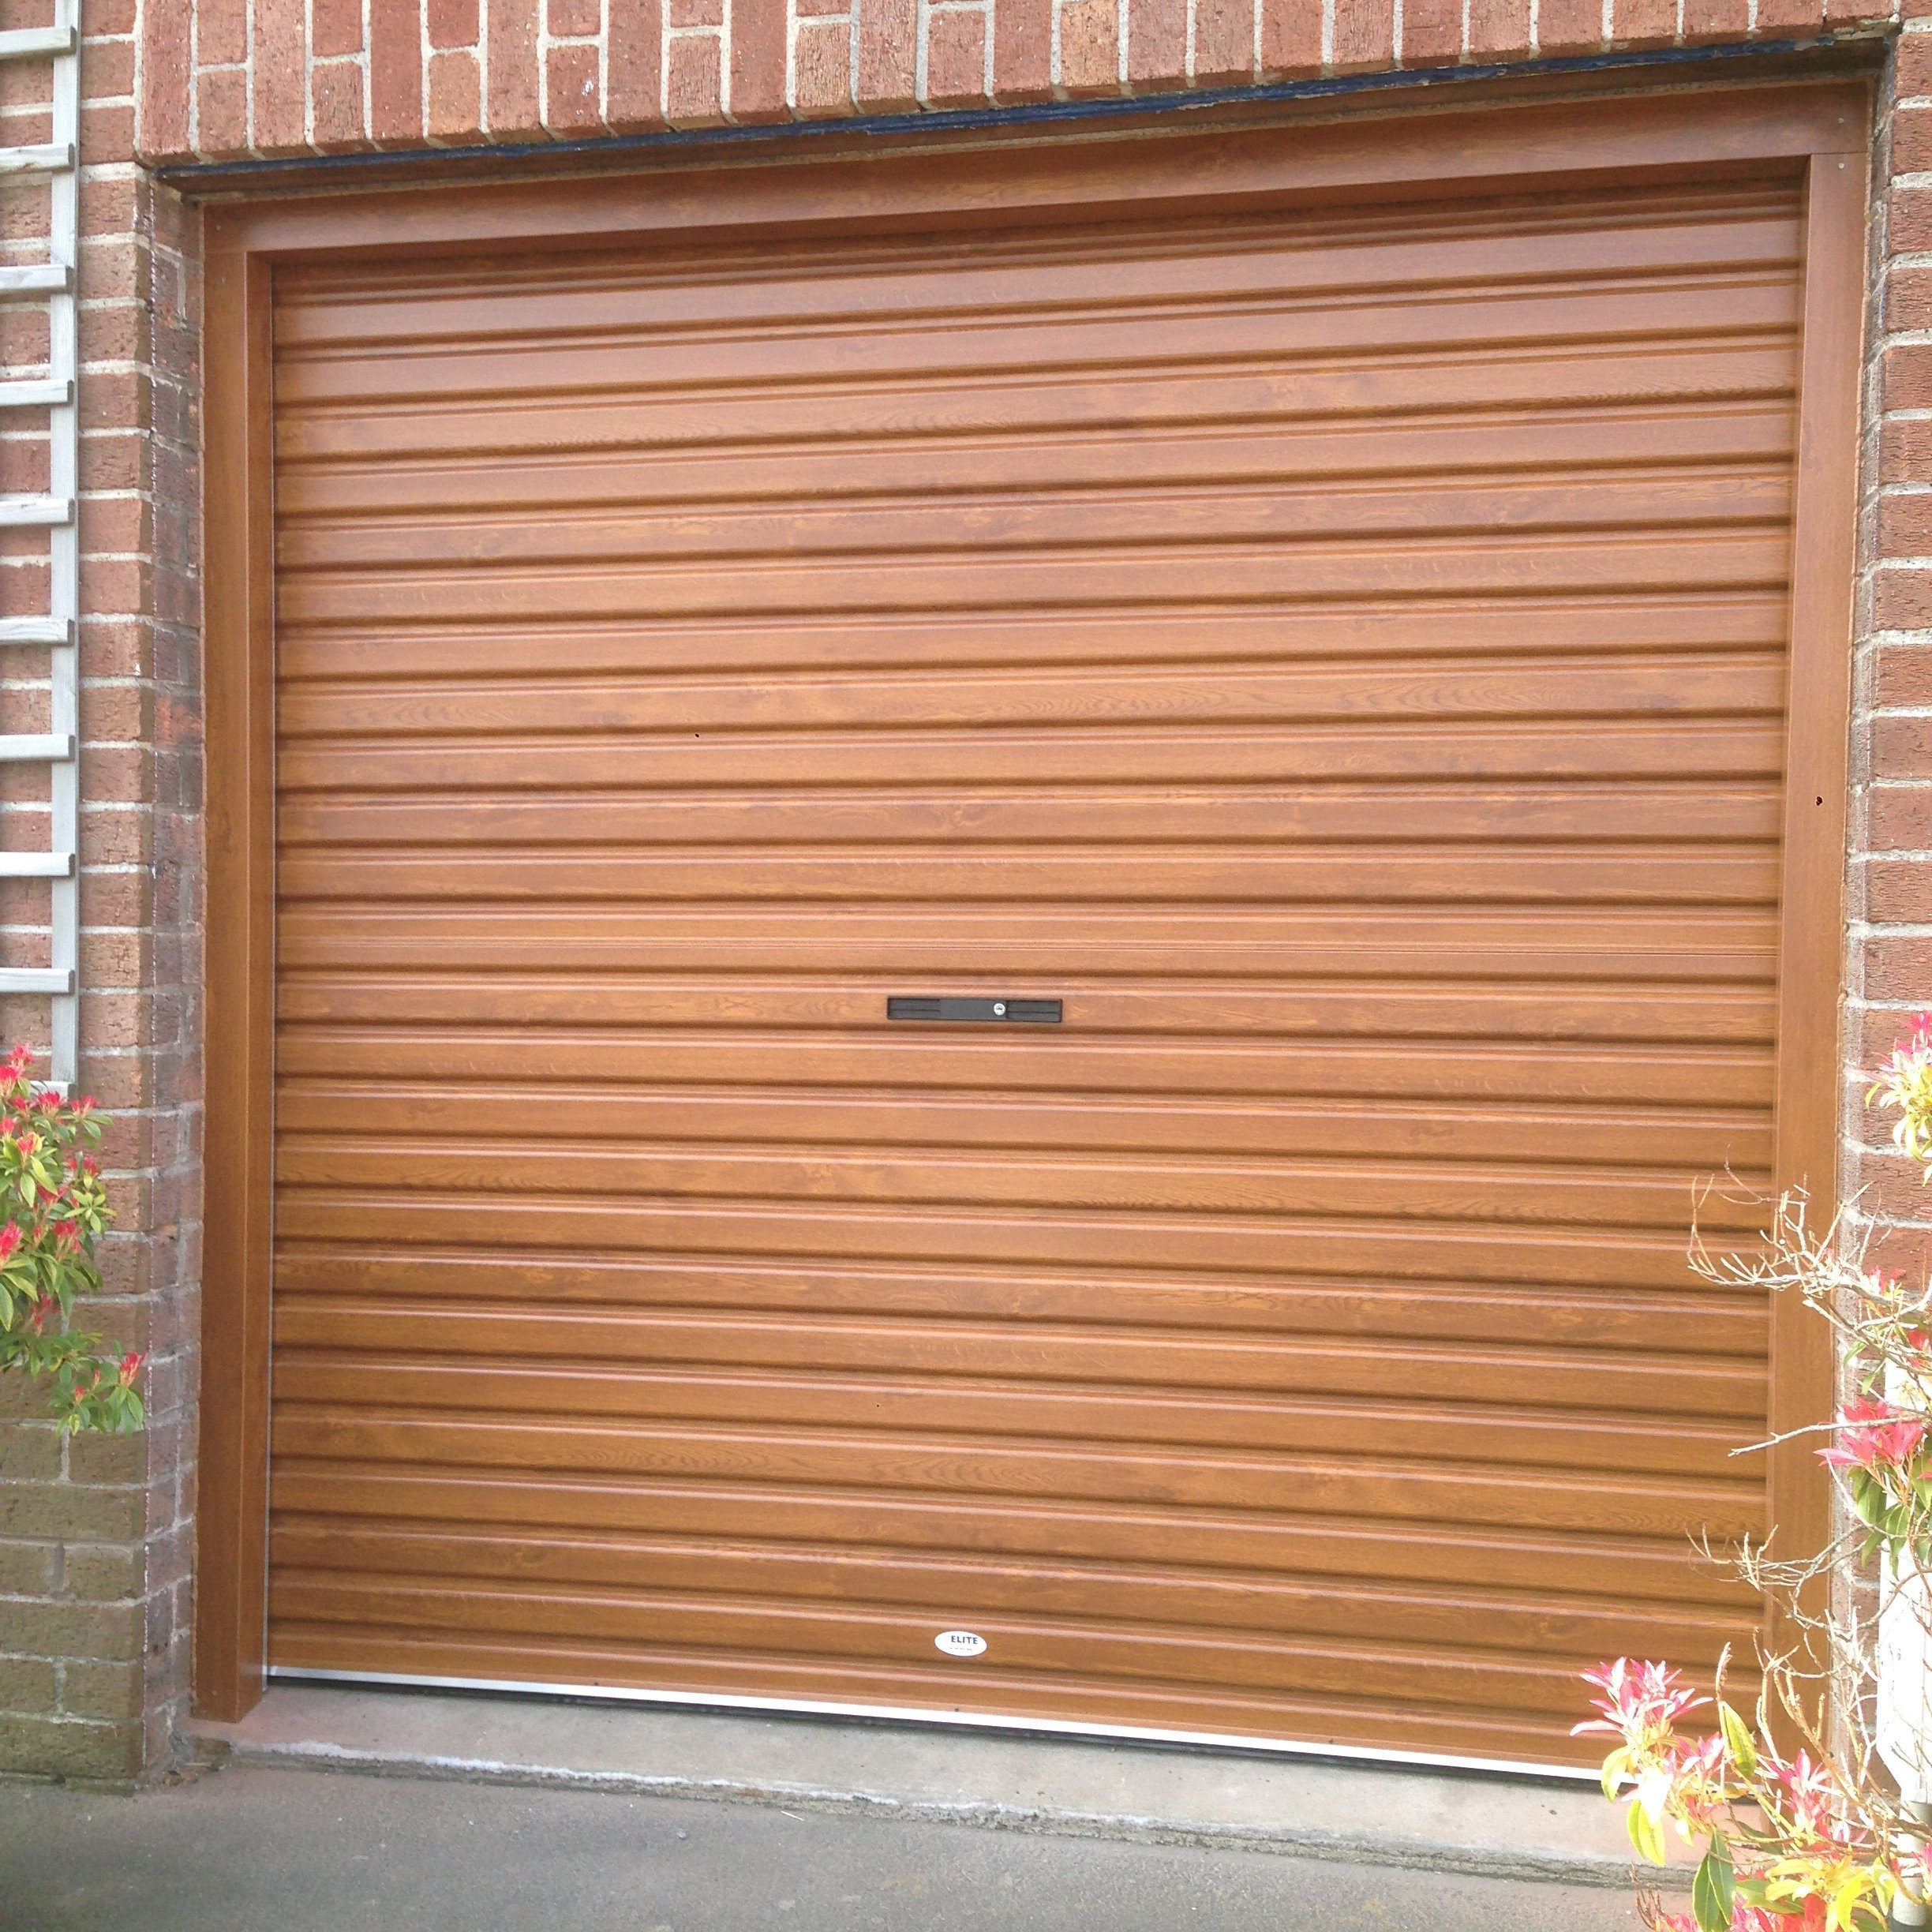 Garage door specialists at elite garage doors in comber for Screen door garage roller door